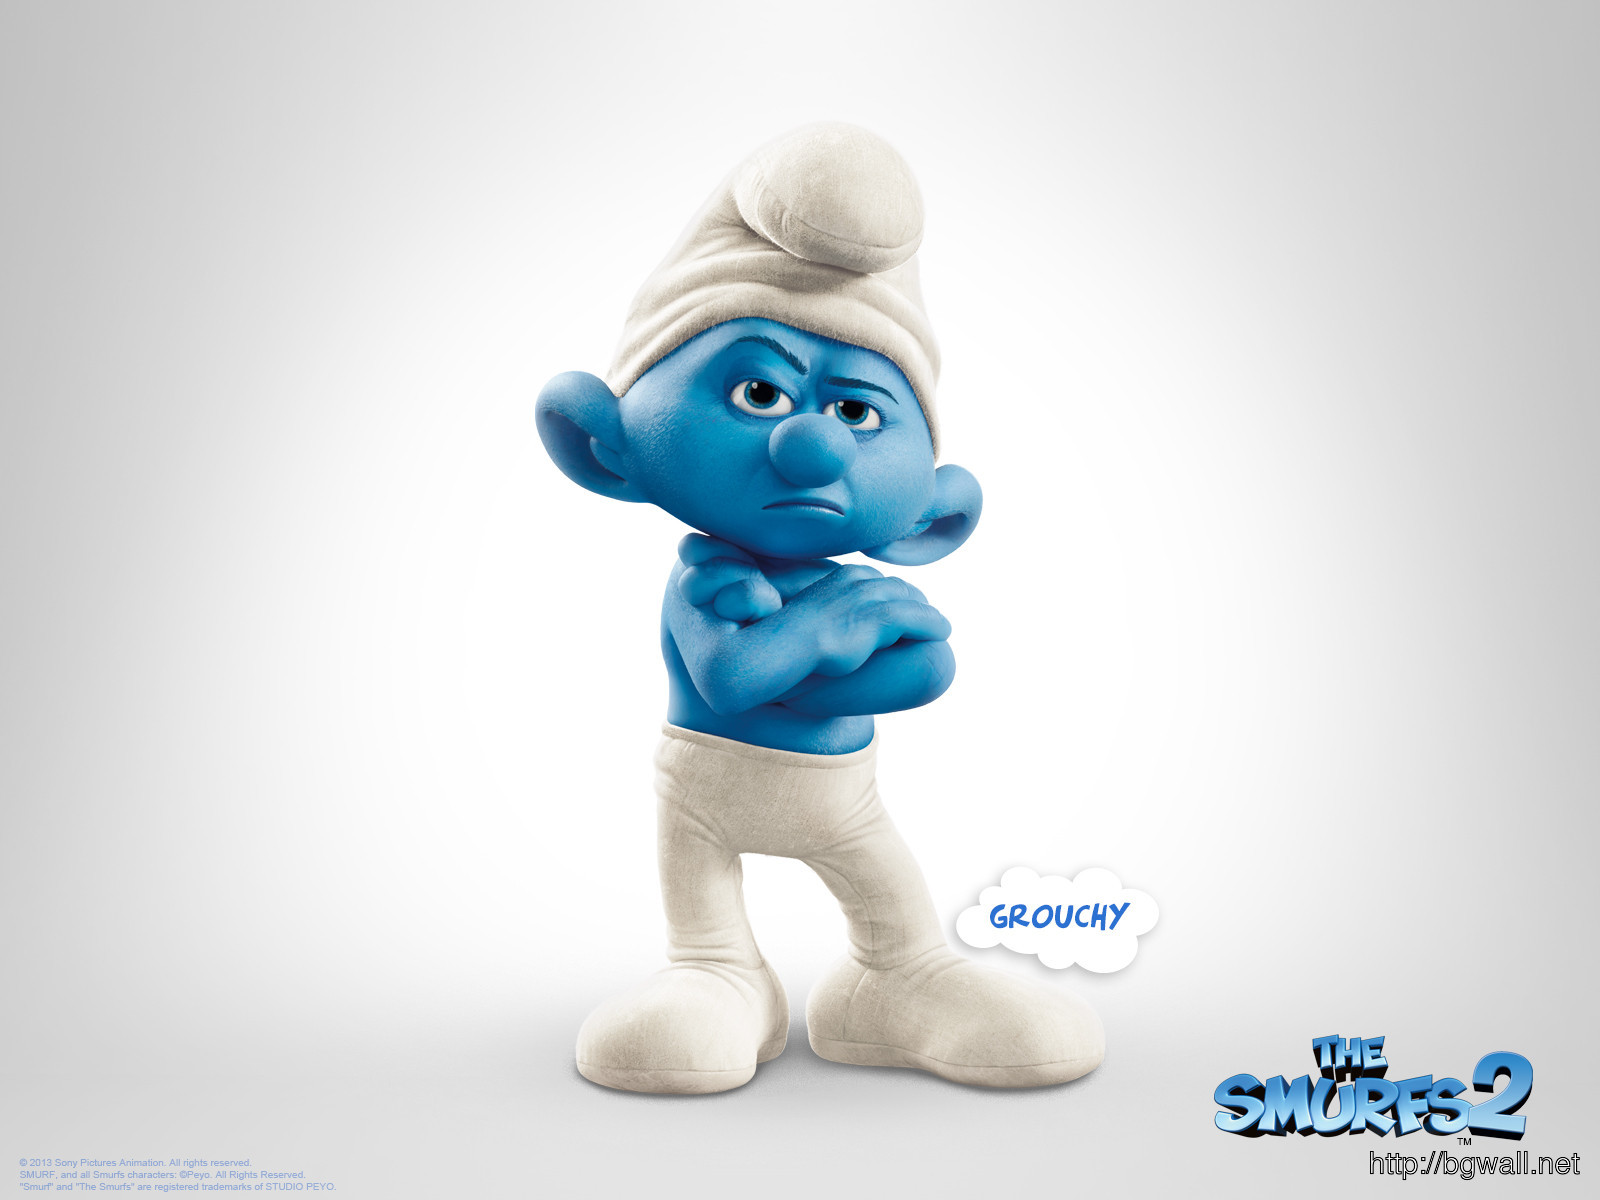 George Lopez Grouchy In The Smurfs 2 Wallpaper Full Size